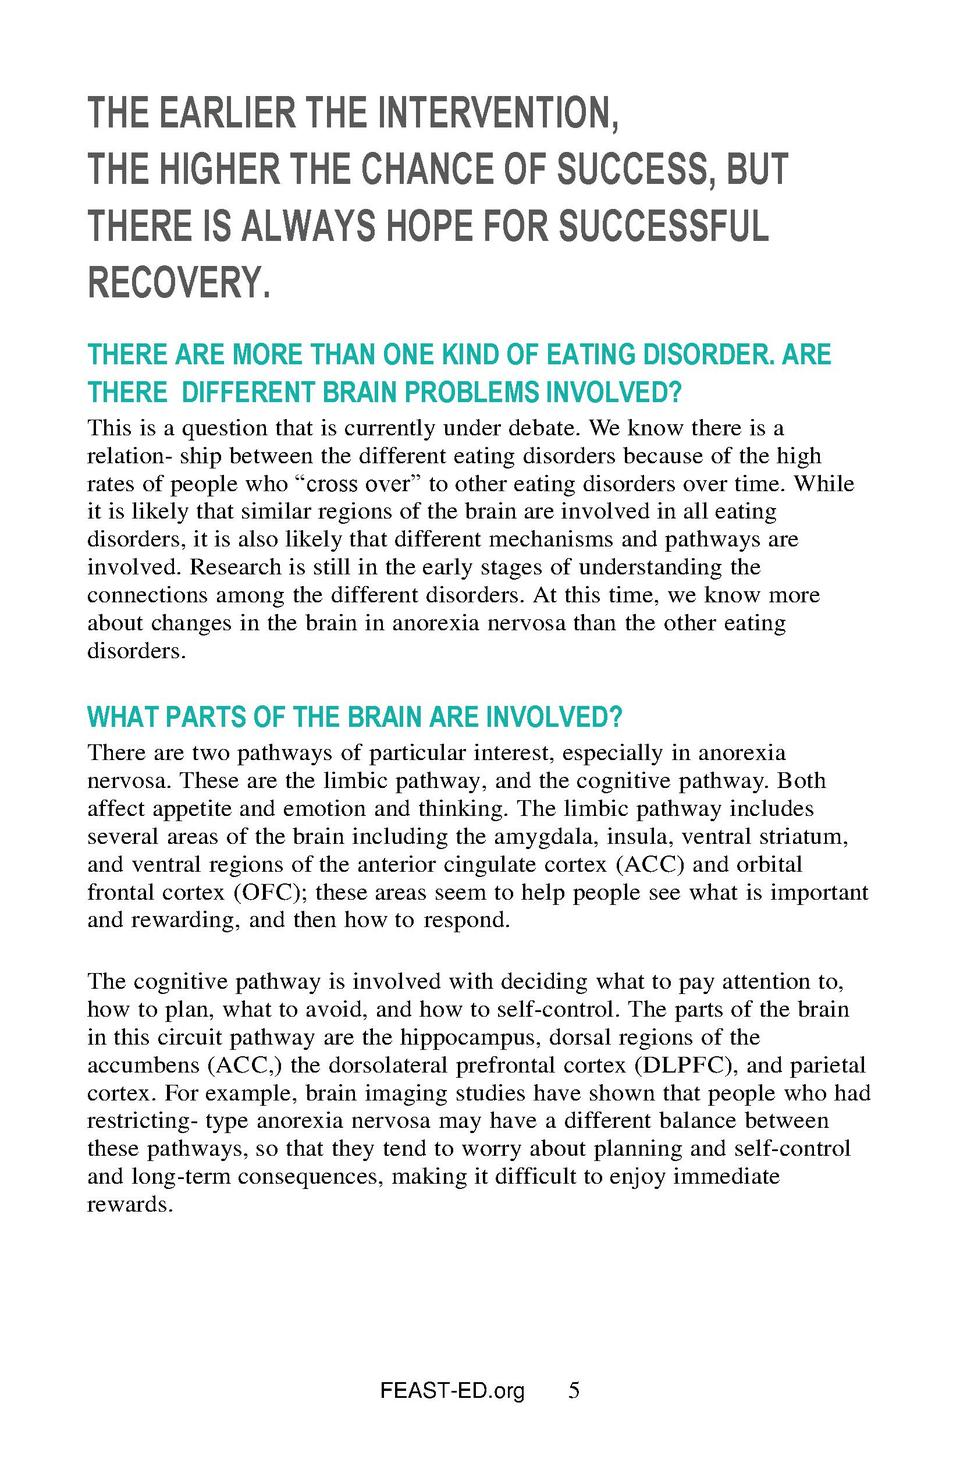 THE EARLIER THE INTERVENTION, THE HIGHER THE CHANCE OF SUCCESS, BUT THERE IS ALWAYS HOPE FOR SUCCESSFUL RECOVERY. THERE AR...